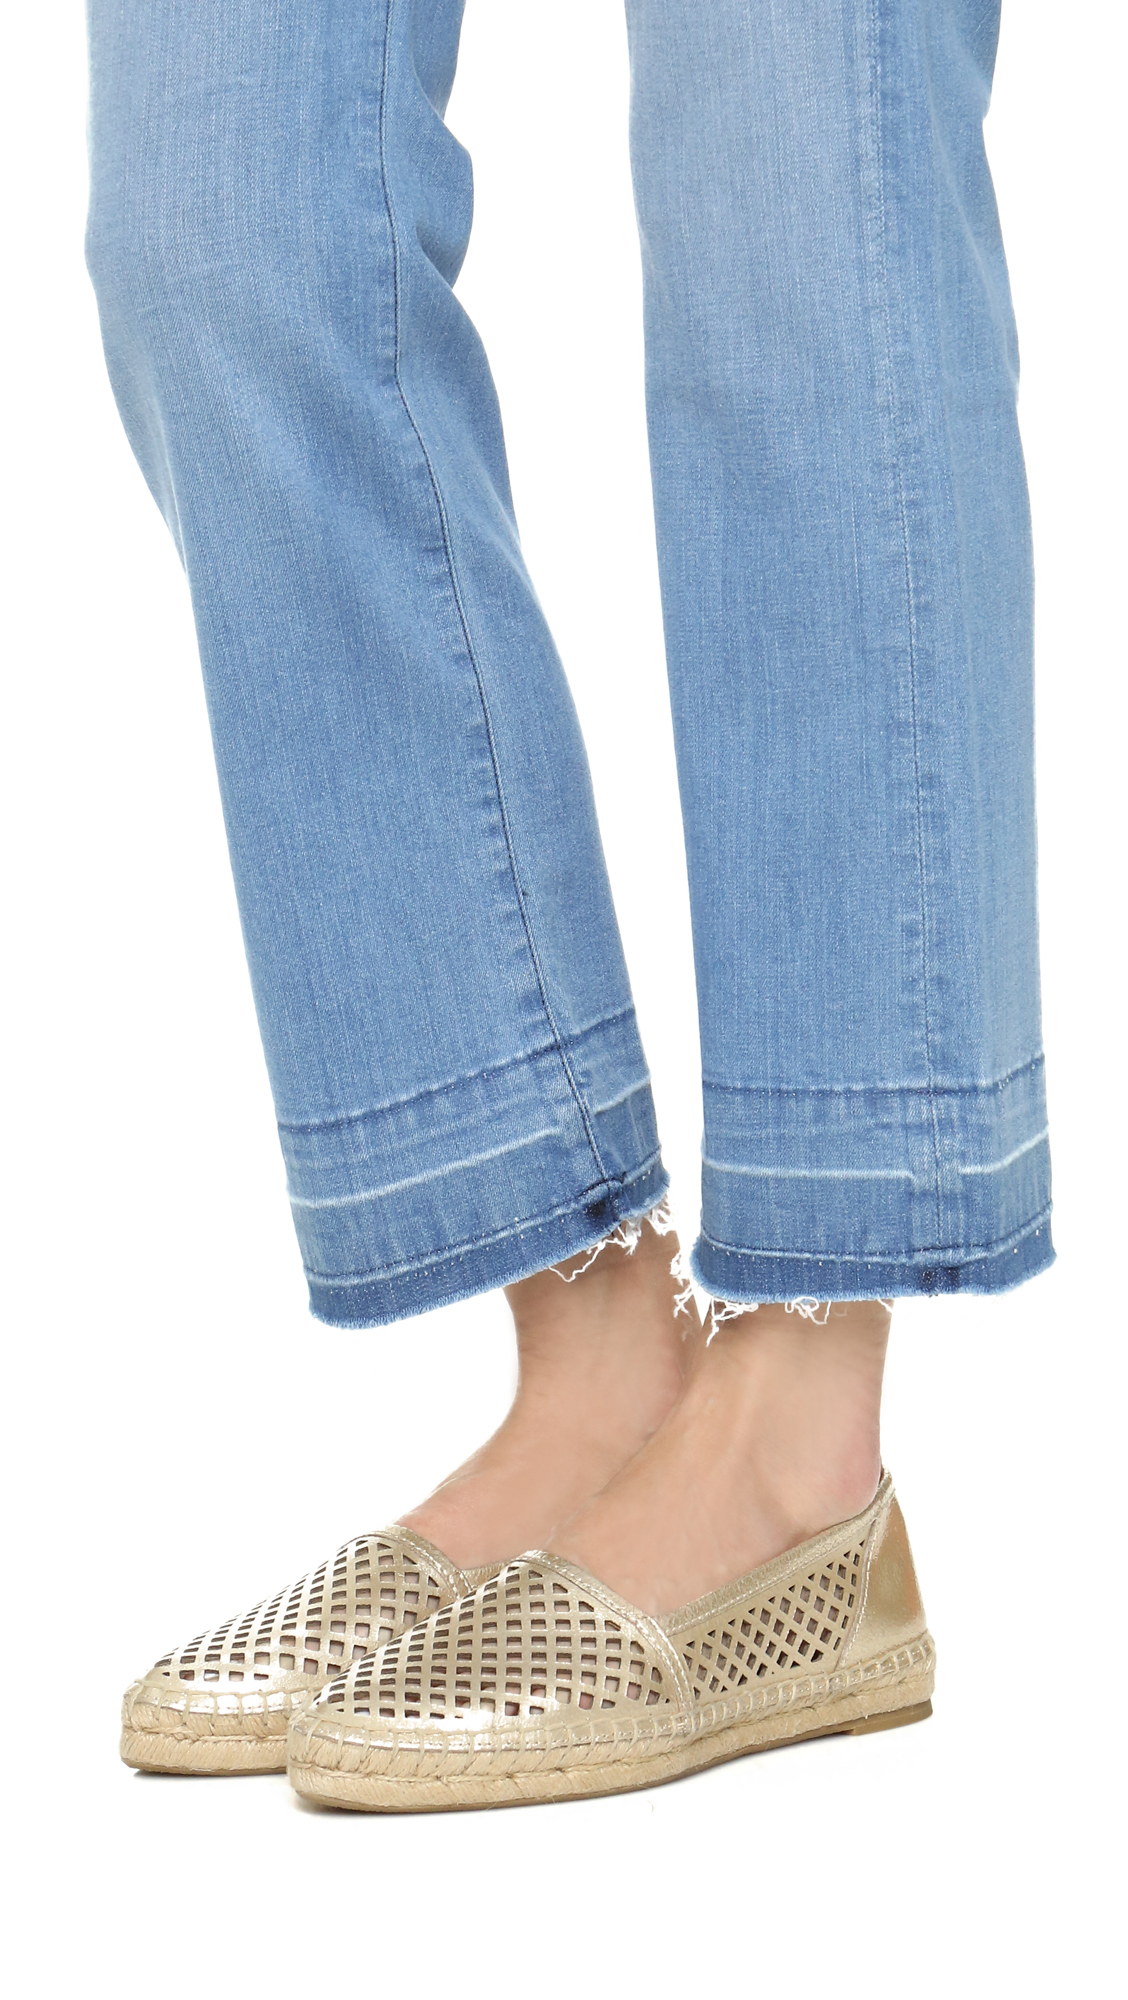 e6aee3355f9 Frye Lee A Line Perforated Espadrilles   SHOPBOP